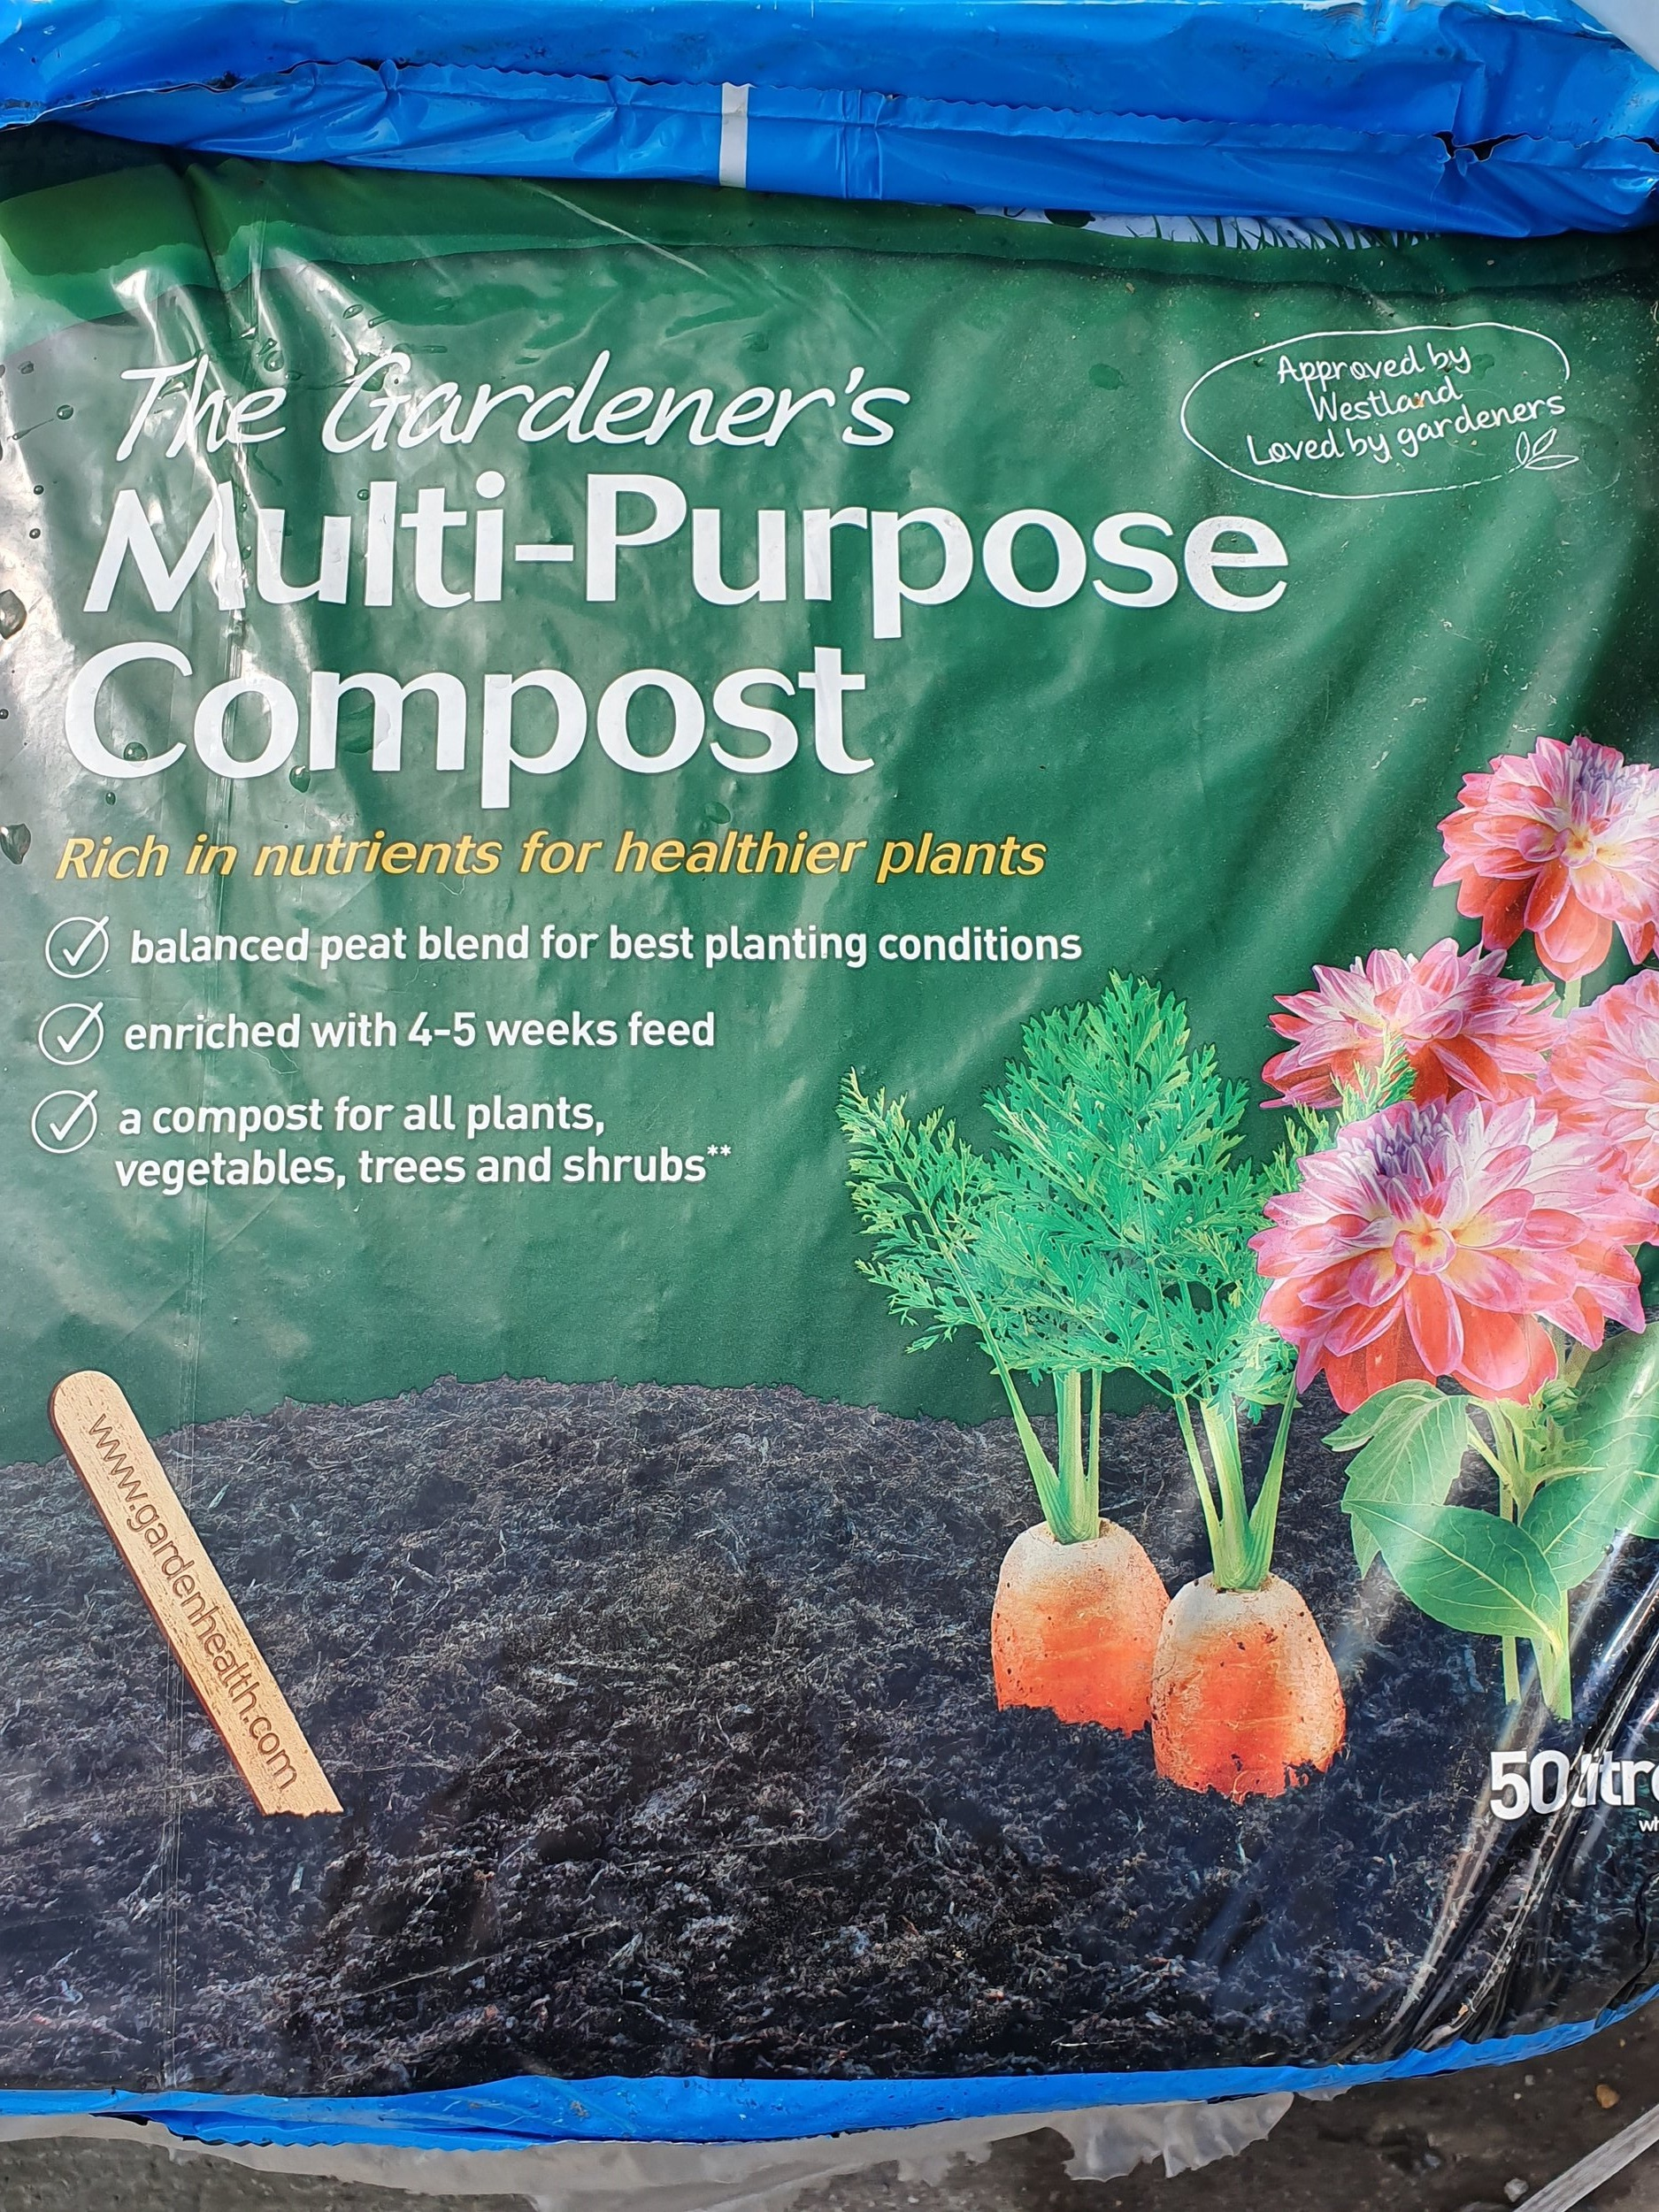 Multipurpose Compost in 50L bags. bulk bags of mushroom compost available to order.